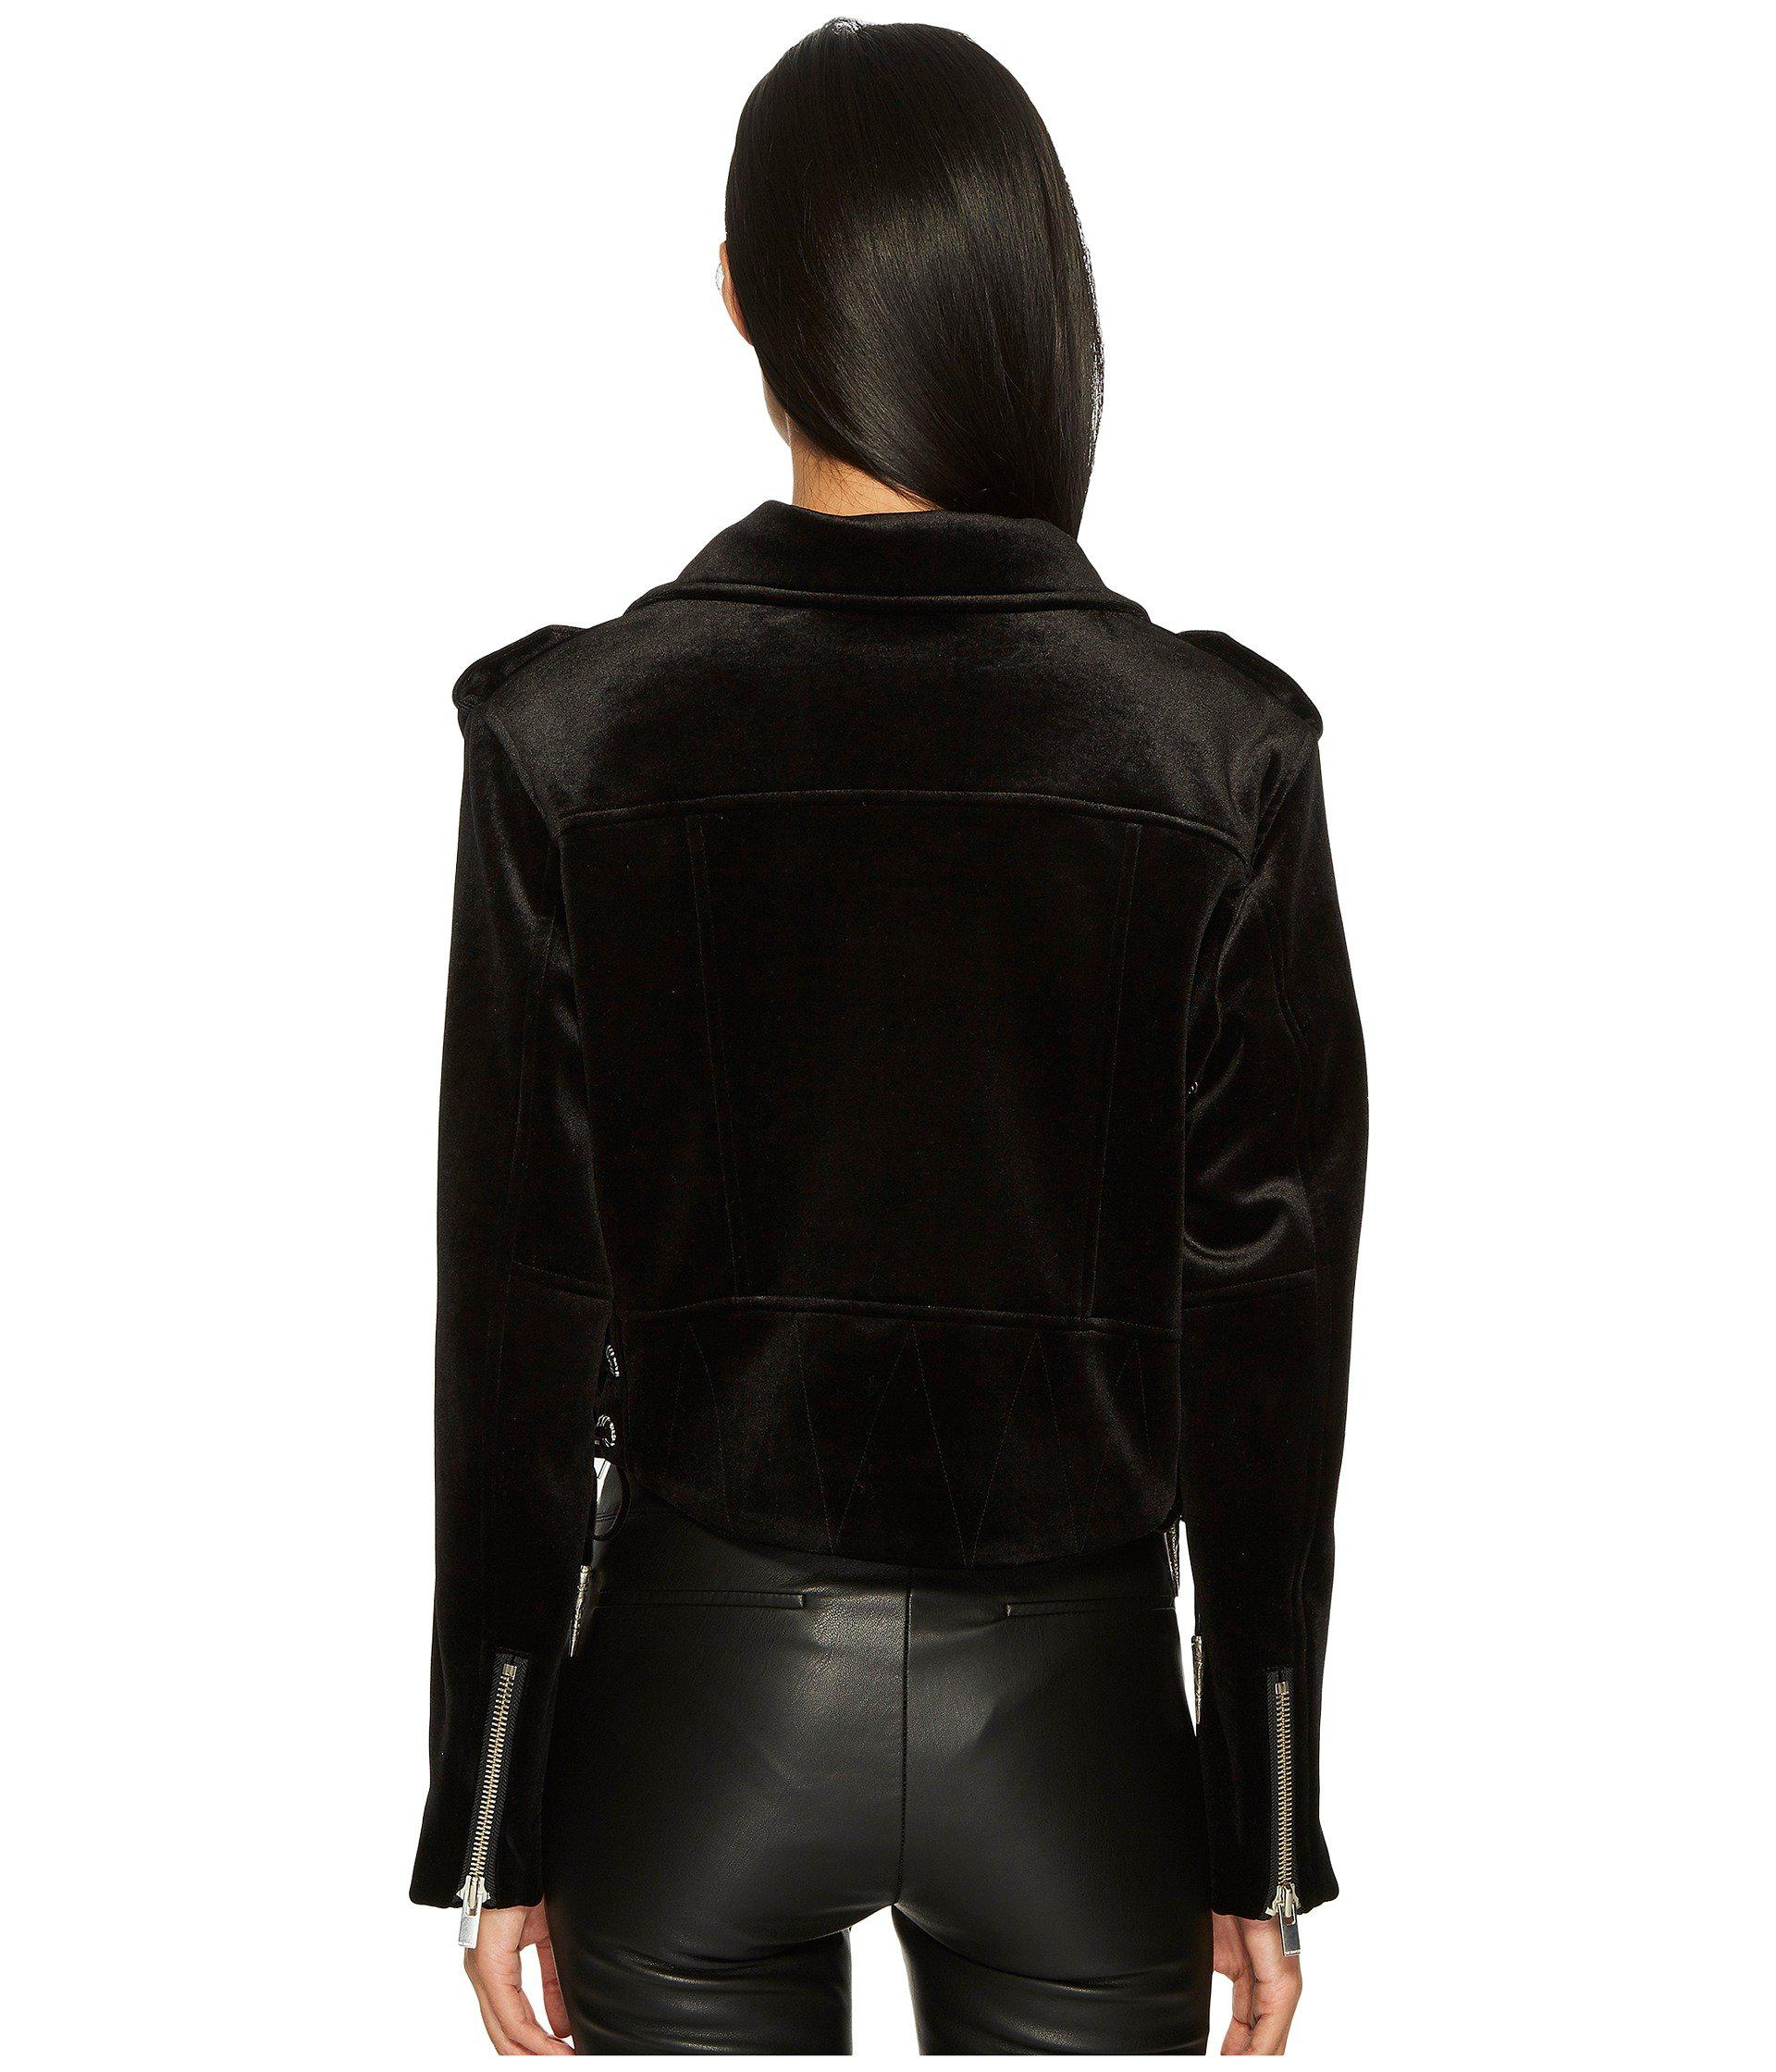 130dd2a0be Gallery. Previously sold at: 6PM, Zappos, Zappos Luxury · Women's Biker  Jackets